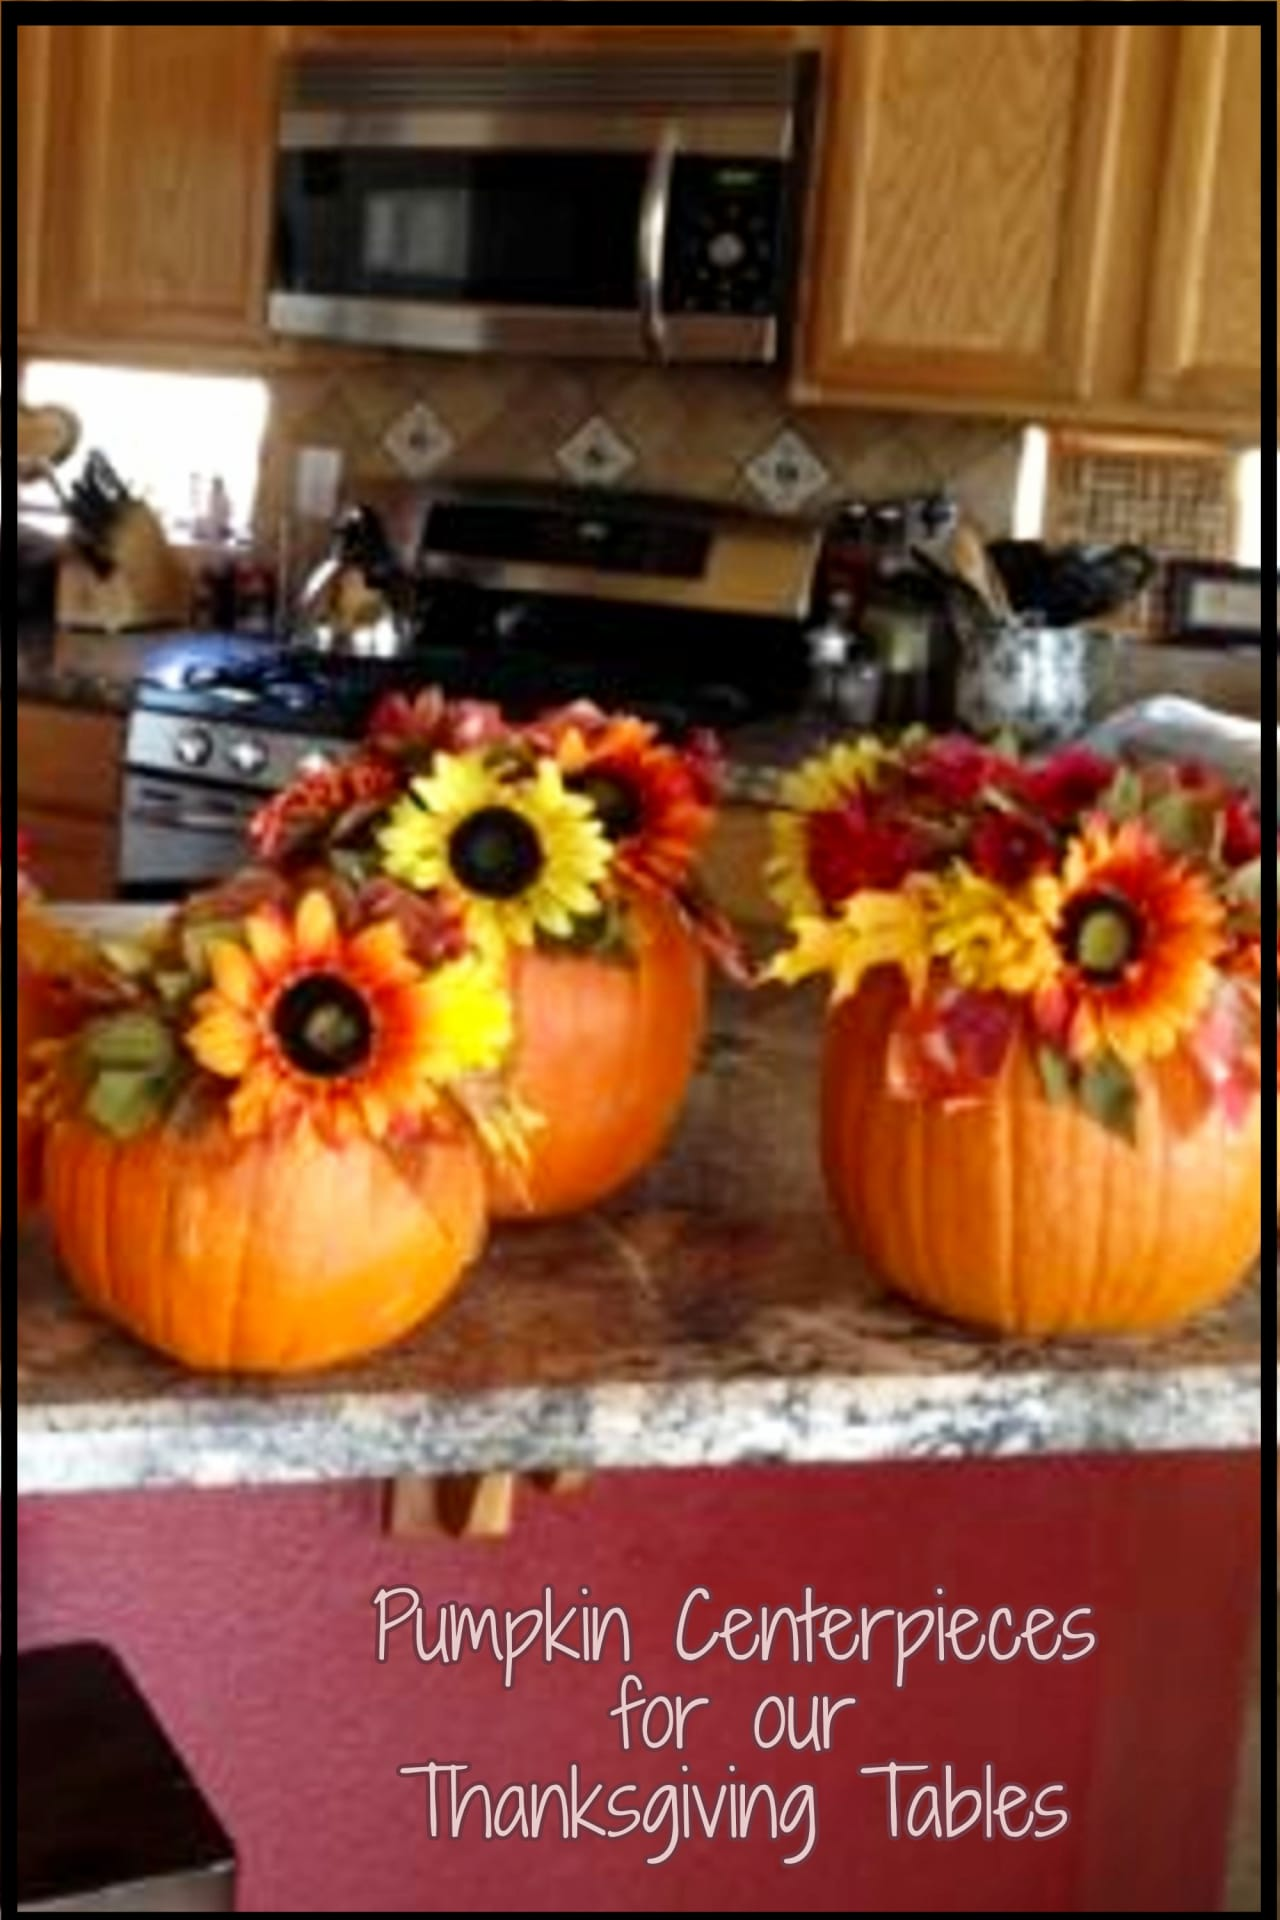 Simple pumpkin centerpieces ideas for your Thanksgiving table setting or Fall decor for the home.  DIY fall pumpkin centerpieces for a Fall wedding, Thanksgiving dinner both rustic and elegant with sunflowers!